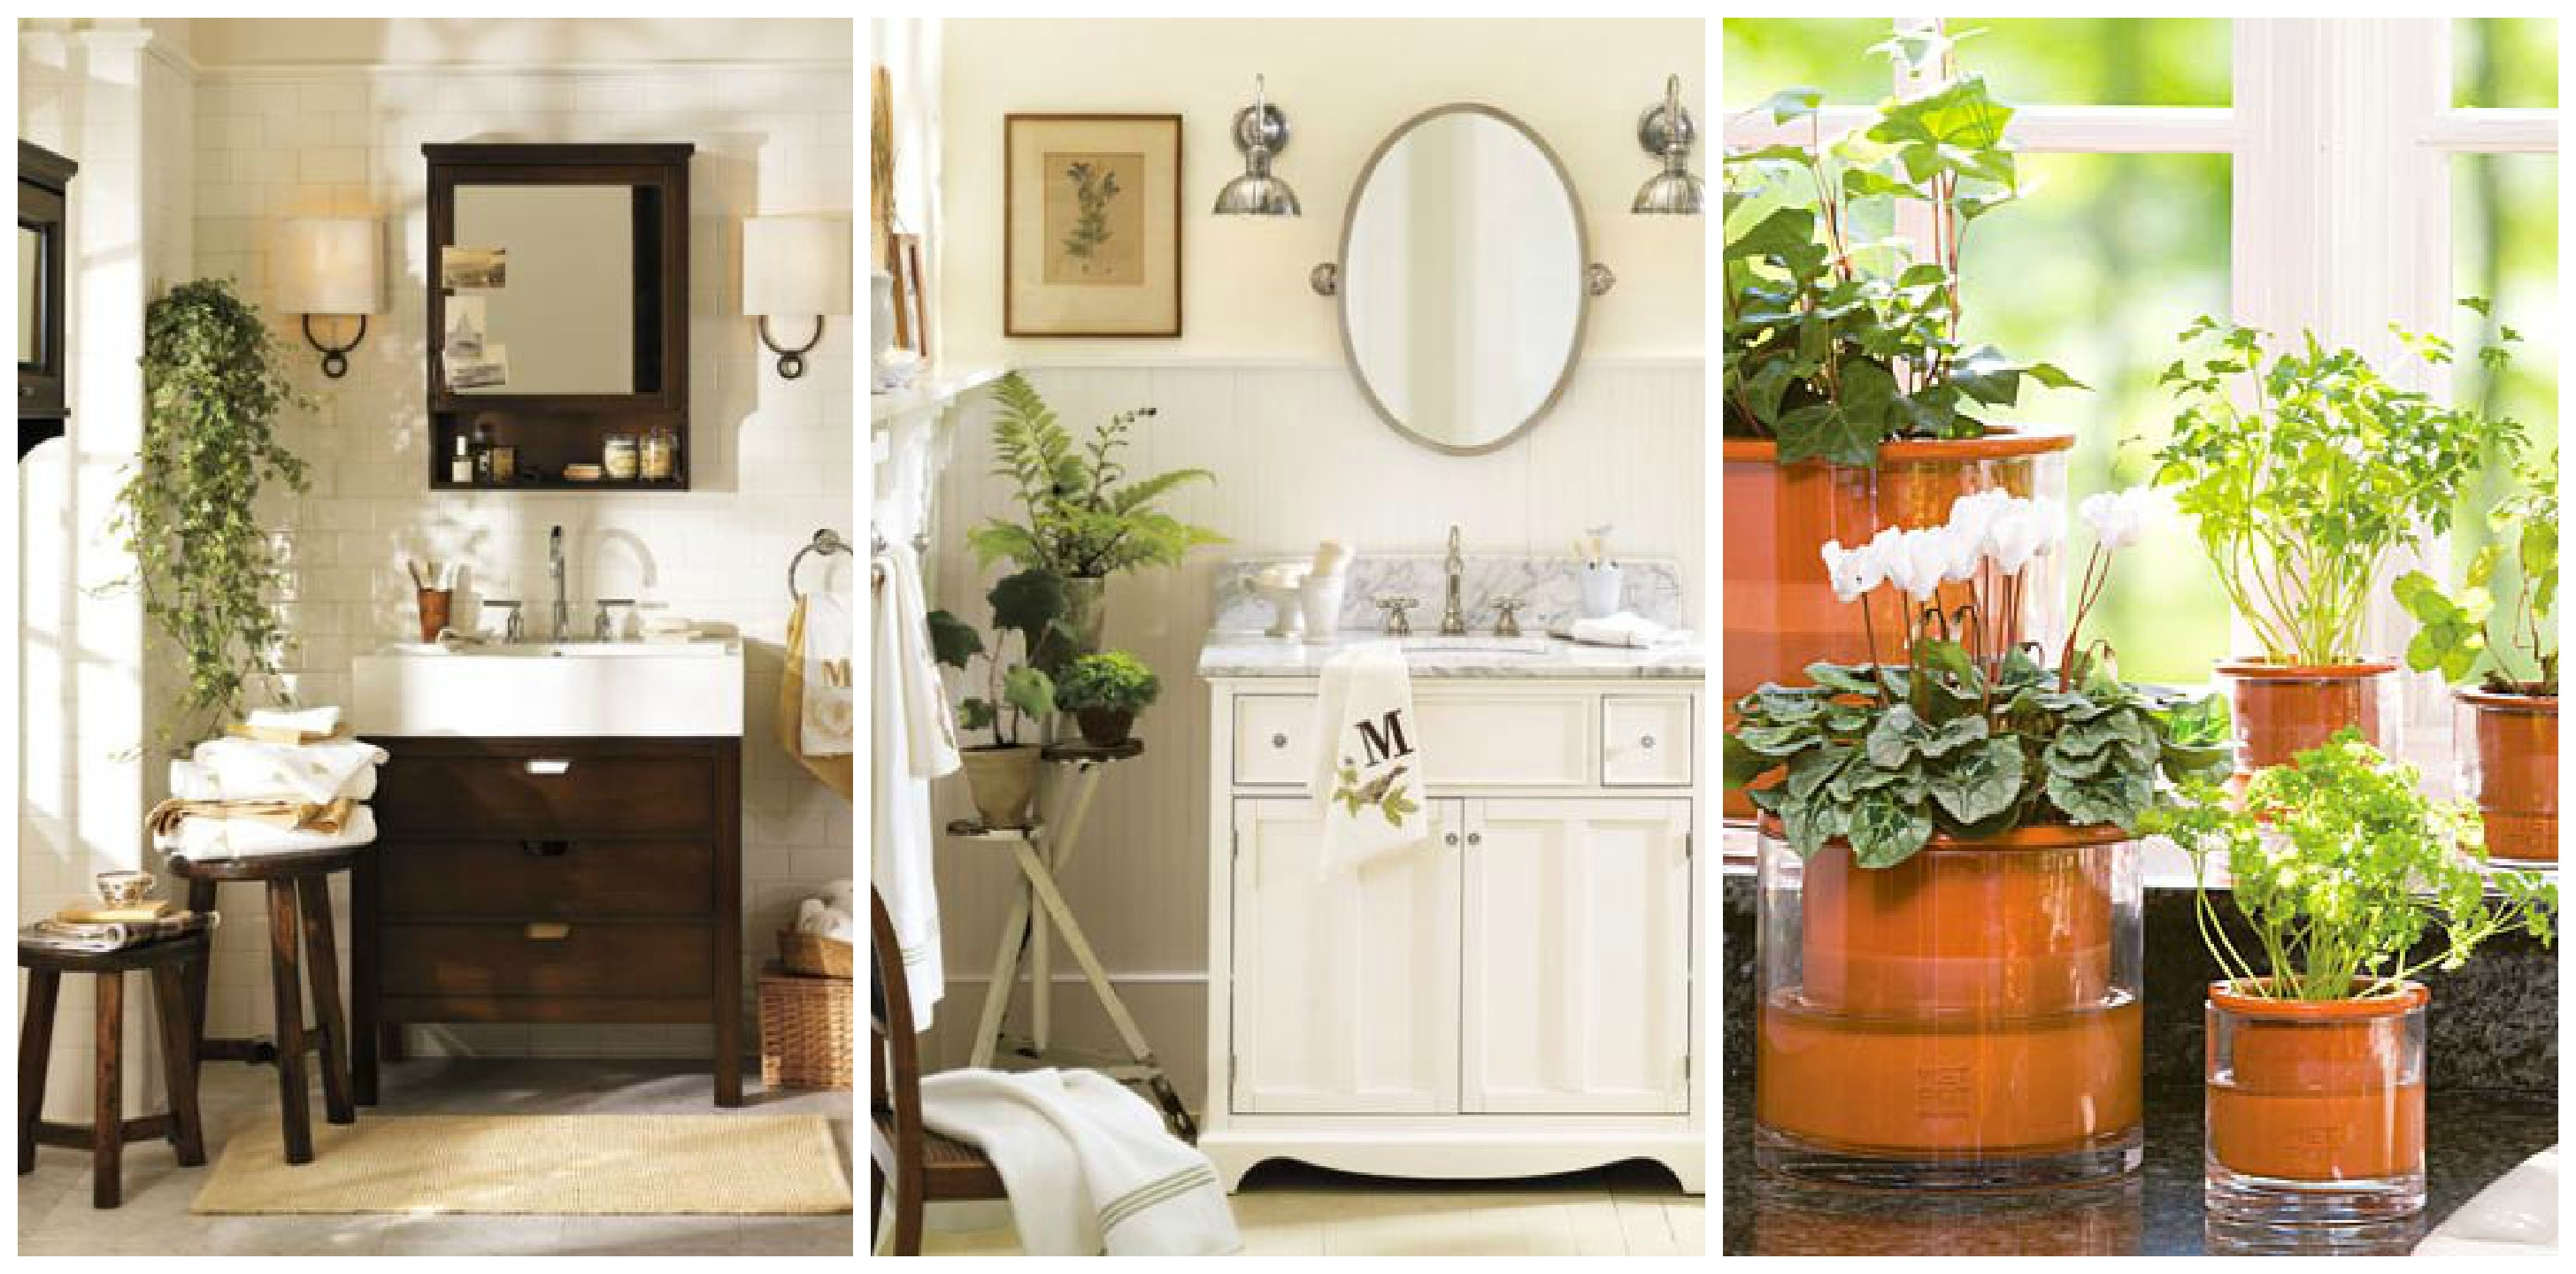 5 simple yet creative bathroom decor ideas uptowngirl for Ideas for bathroom decorating themes